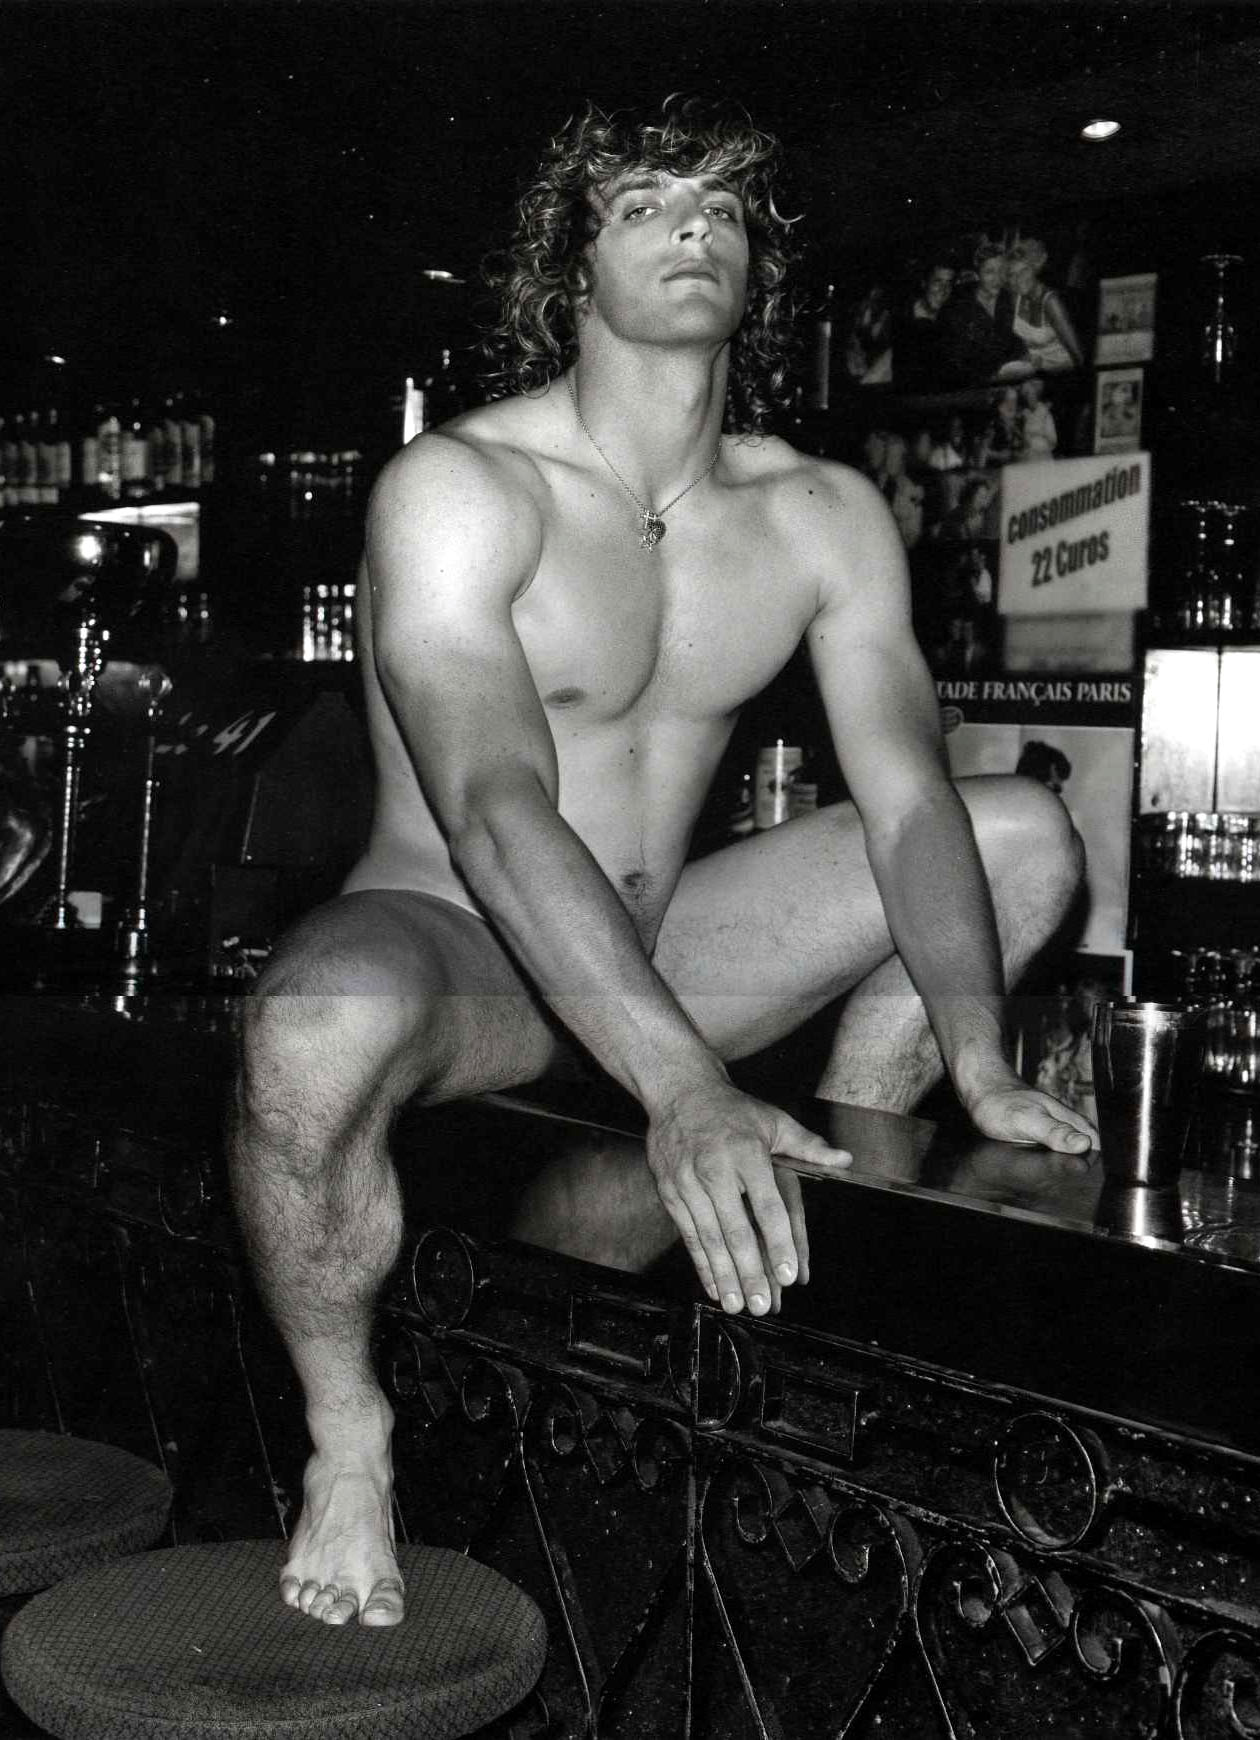 All Male Nudist Groups Free And Naked Cute Guys In Party Bar Gay